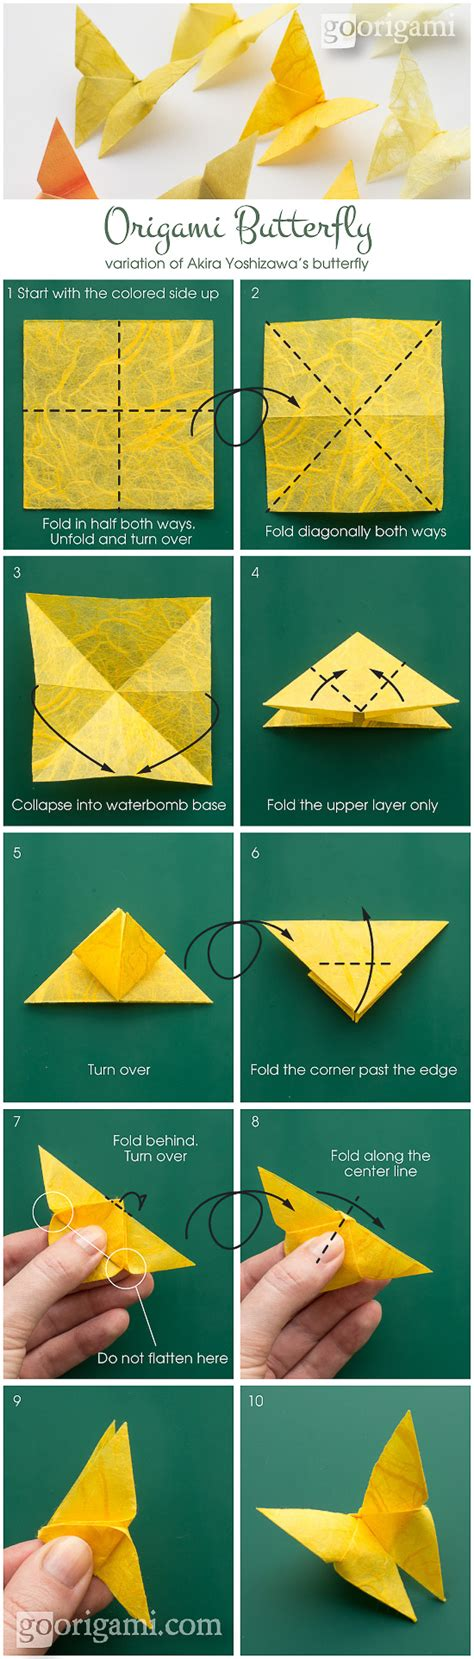 How To Make A Origami Butterfly - easy origami step by step hairstyles